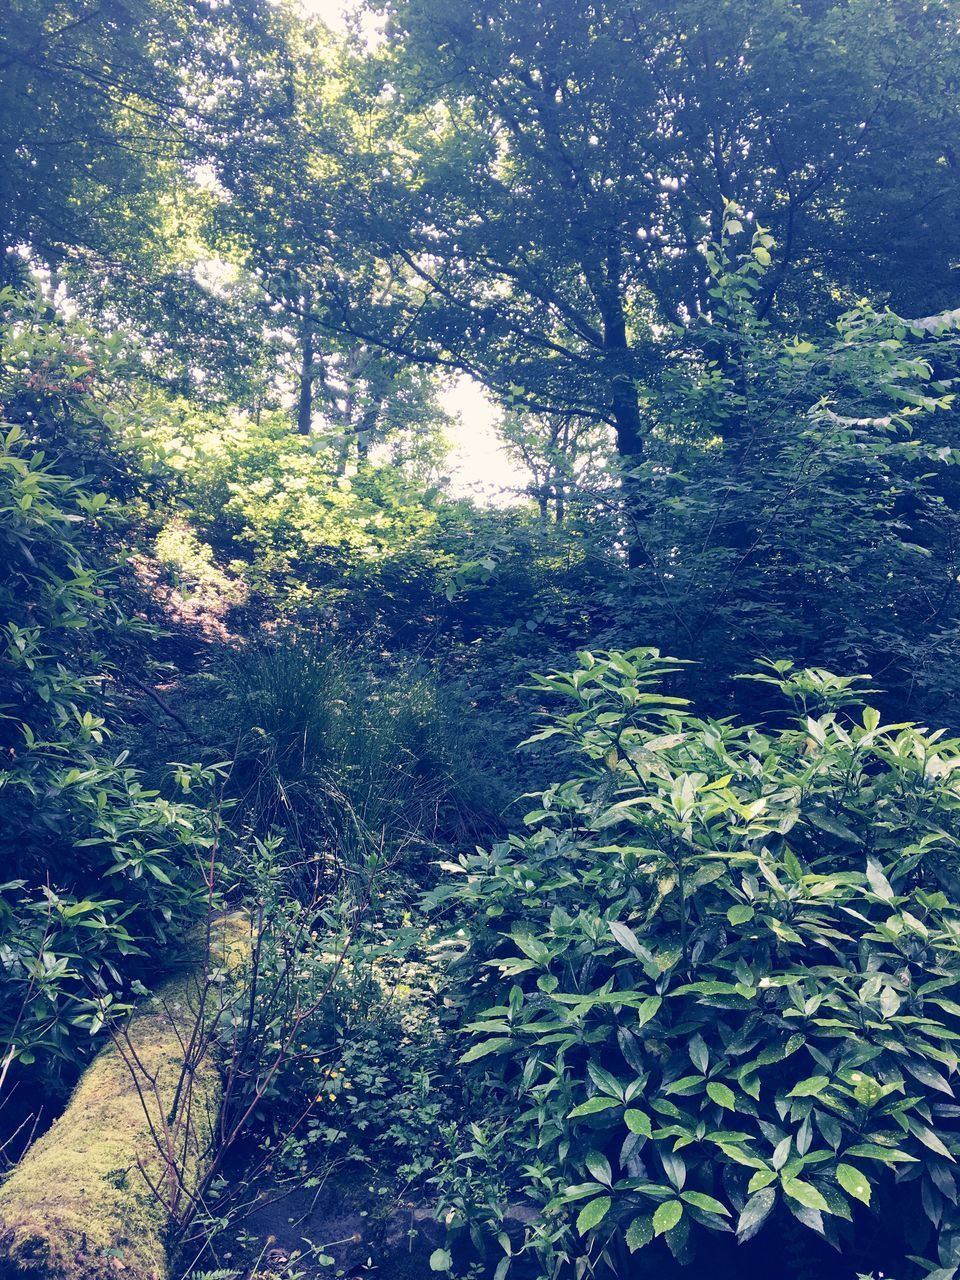 nature, forest, growth, adventure, plant, day, sunshine, outdoors, no people